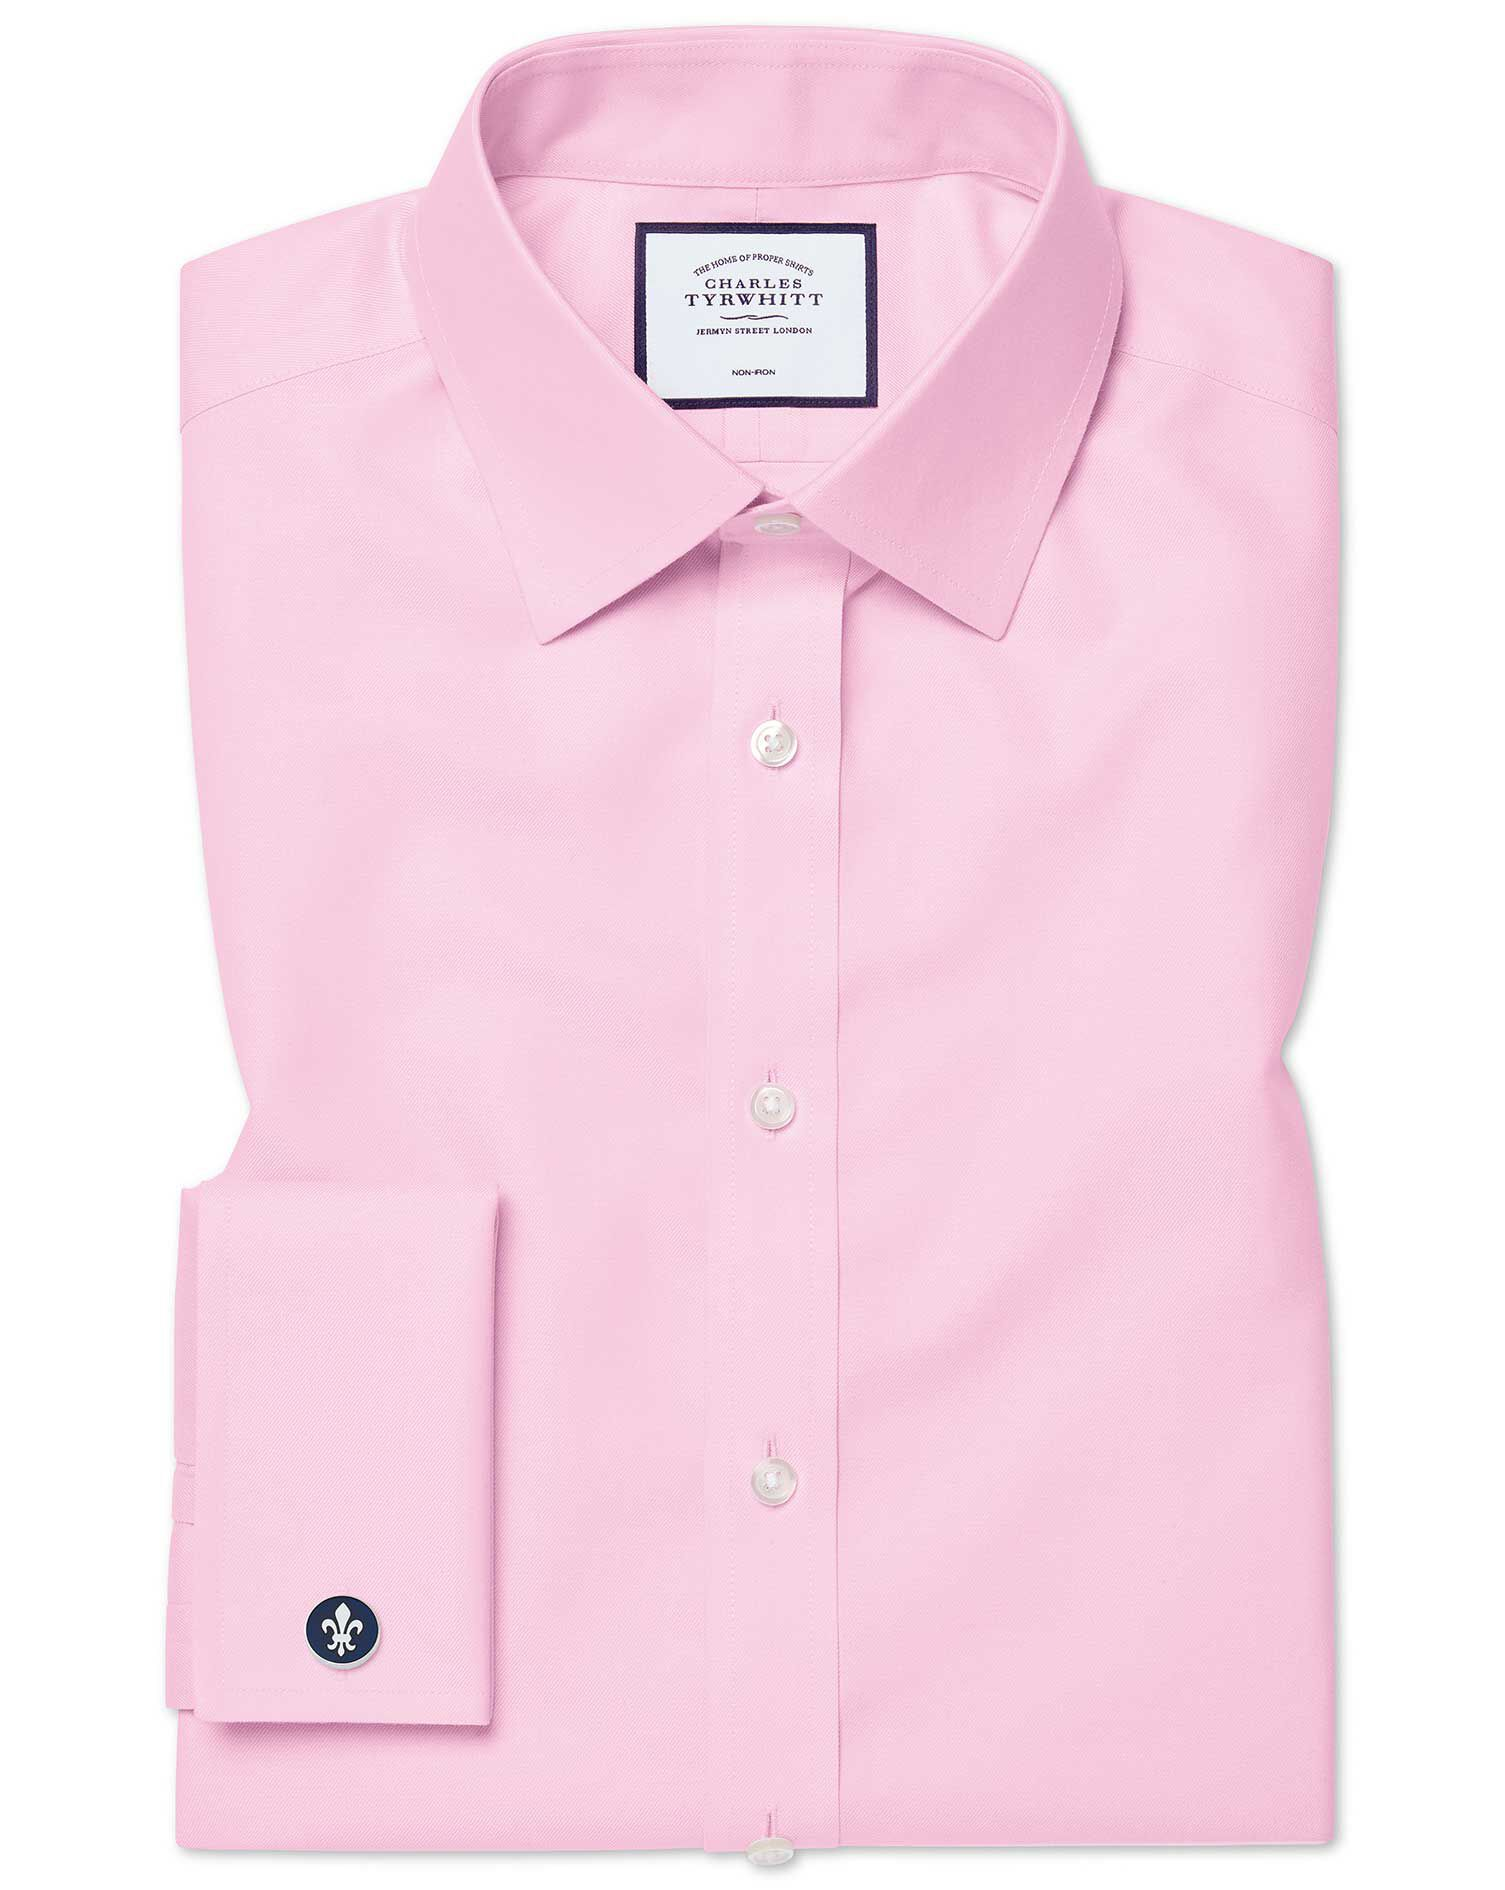 Classic Fit Non-Iron Twill Pink Cotton Formal Shirt Double Cuff Size 19/37 by Charles Tyrwhitt